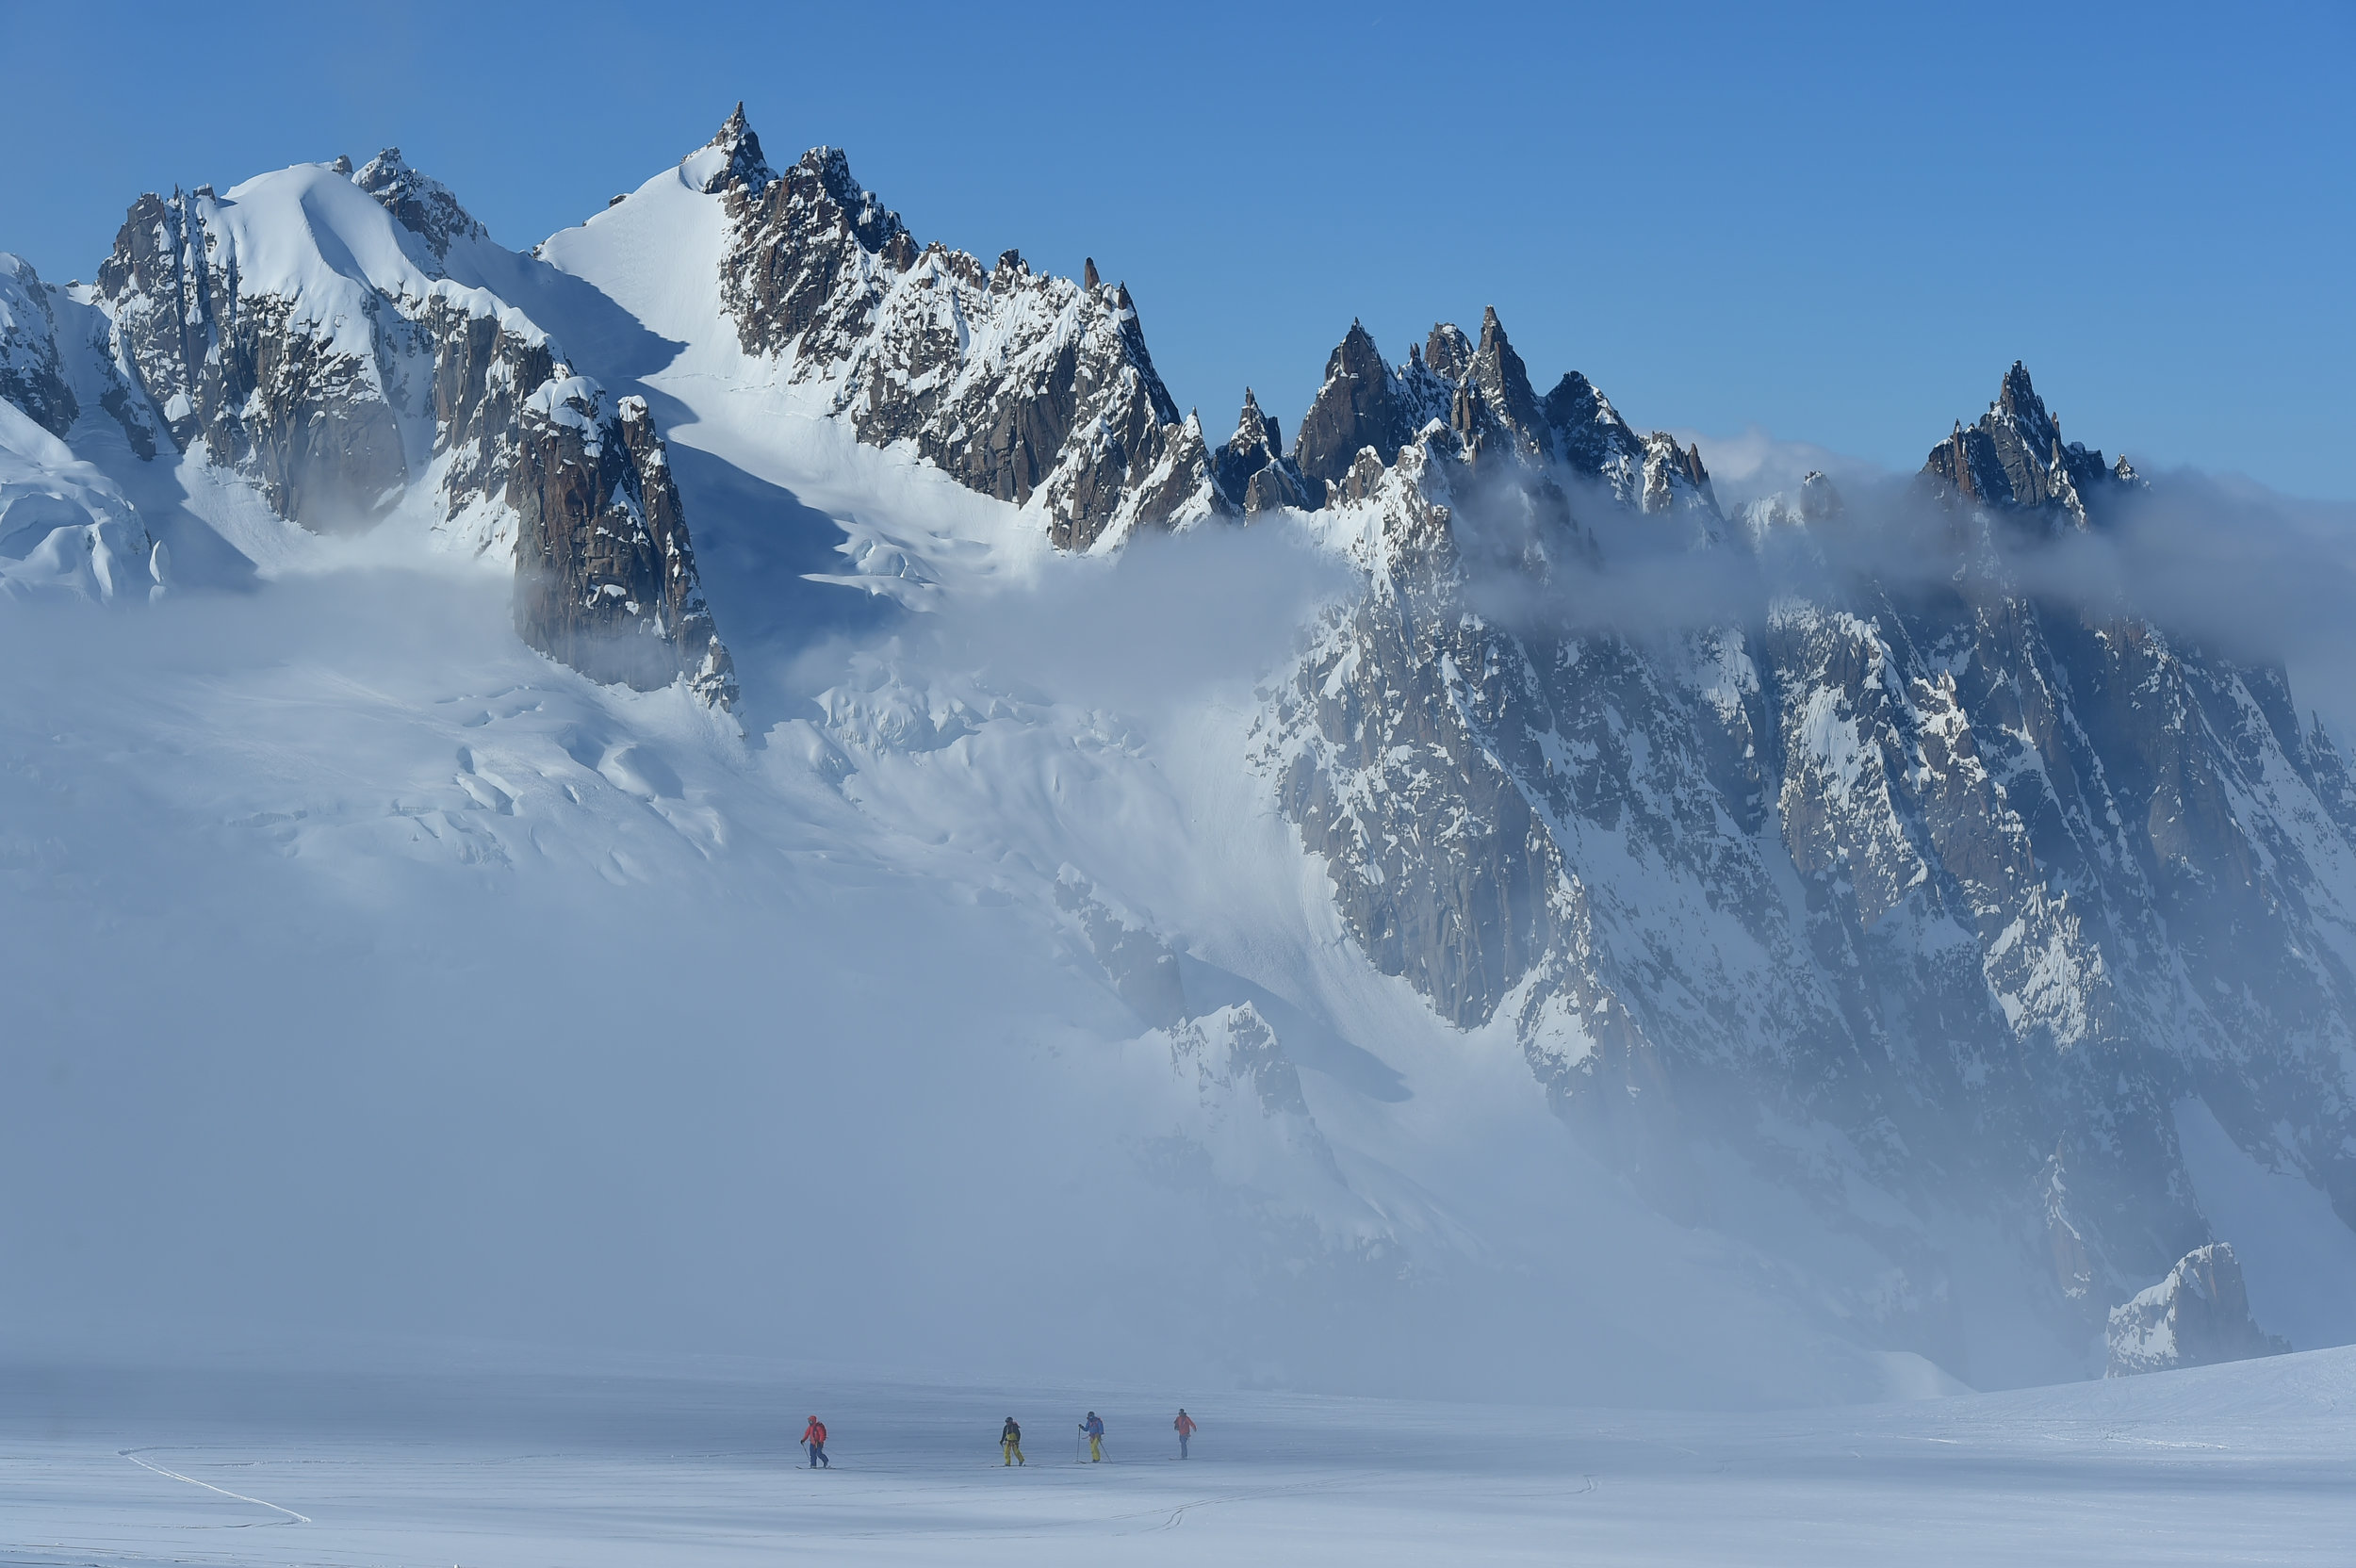 Ski touring back to the Skyway with Mont Blanc in the background.  Photo: Mattias Fredriksson